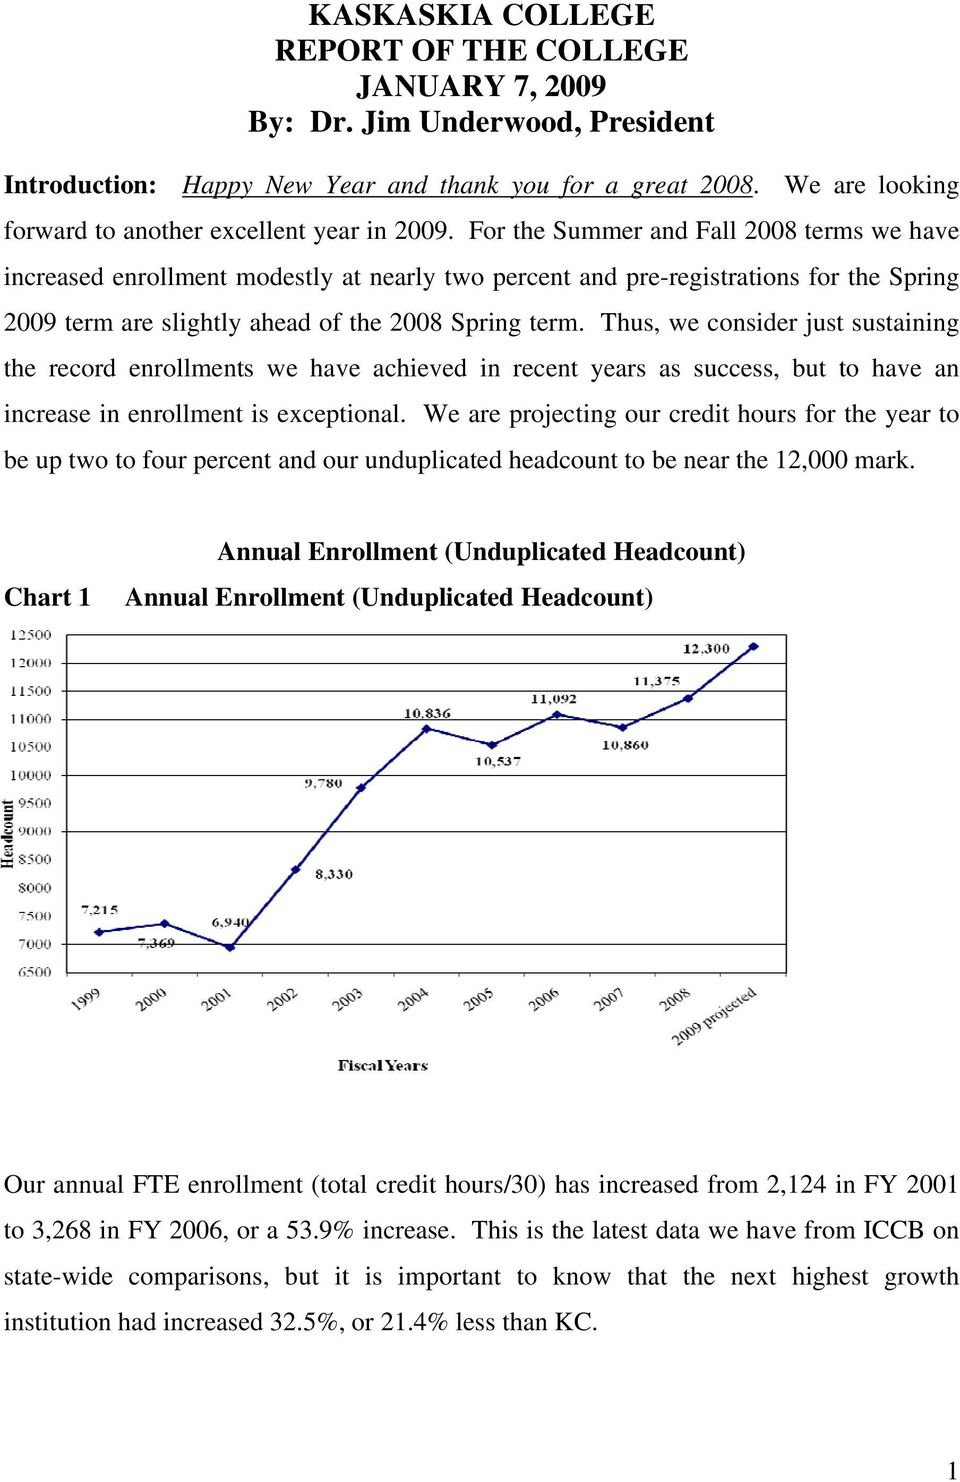 For the Summer and Fall 2008 terms we have increased enrollment modestly at nearly two percent and pre-registrations for the Spring 2009 term are slightly ahead of the 2008 Spring term.